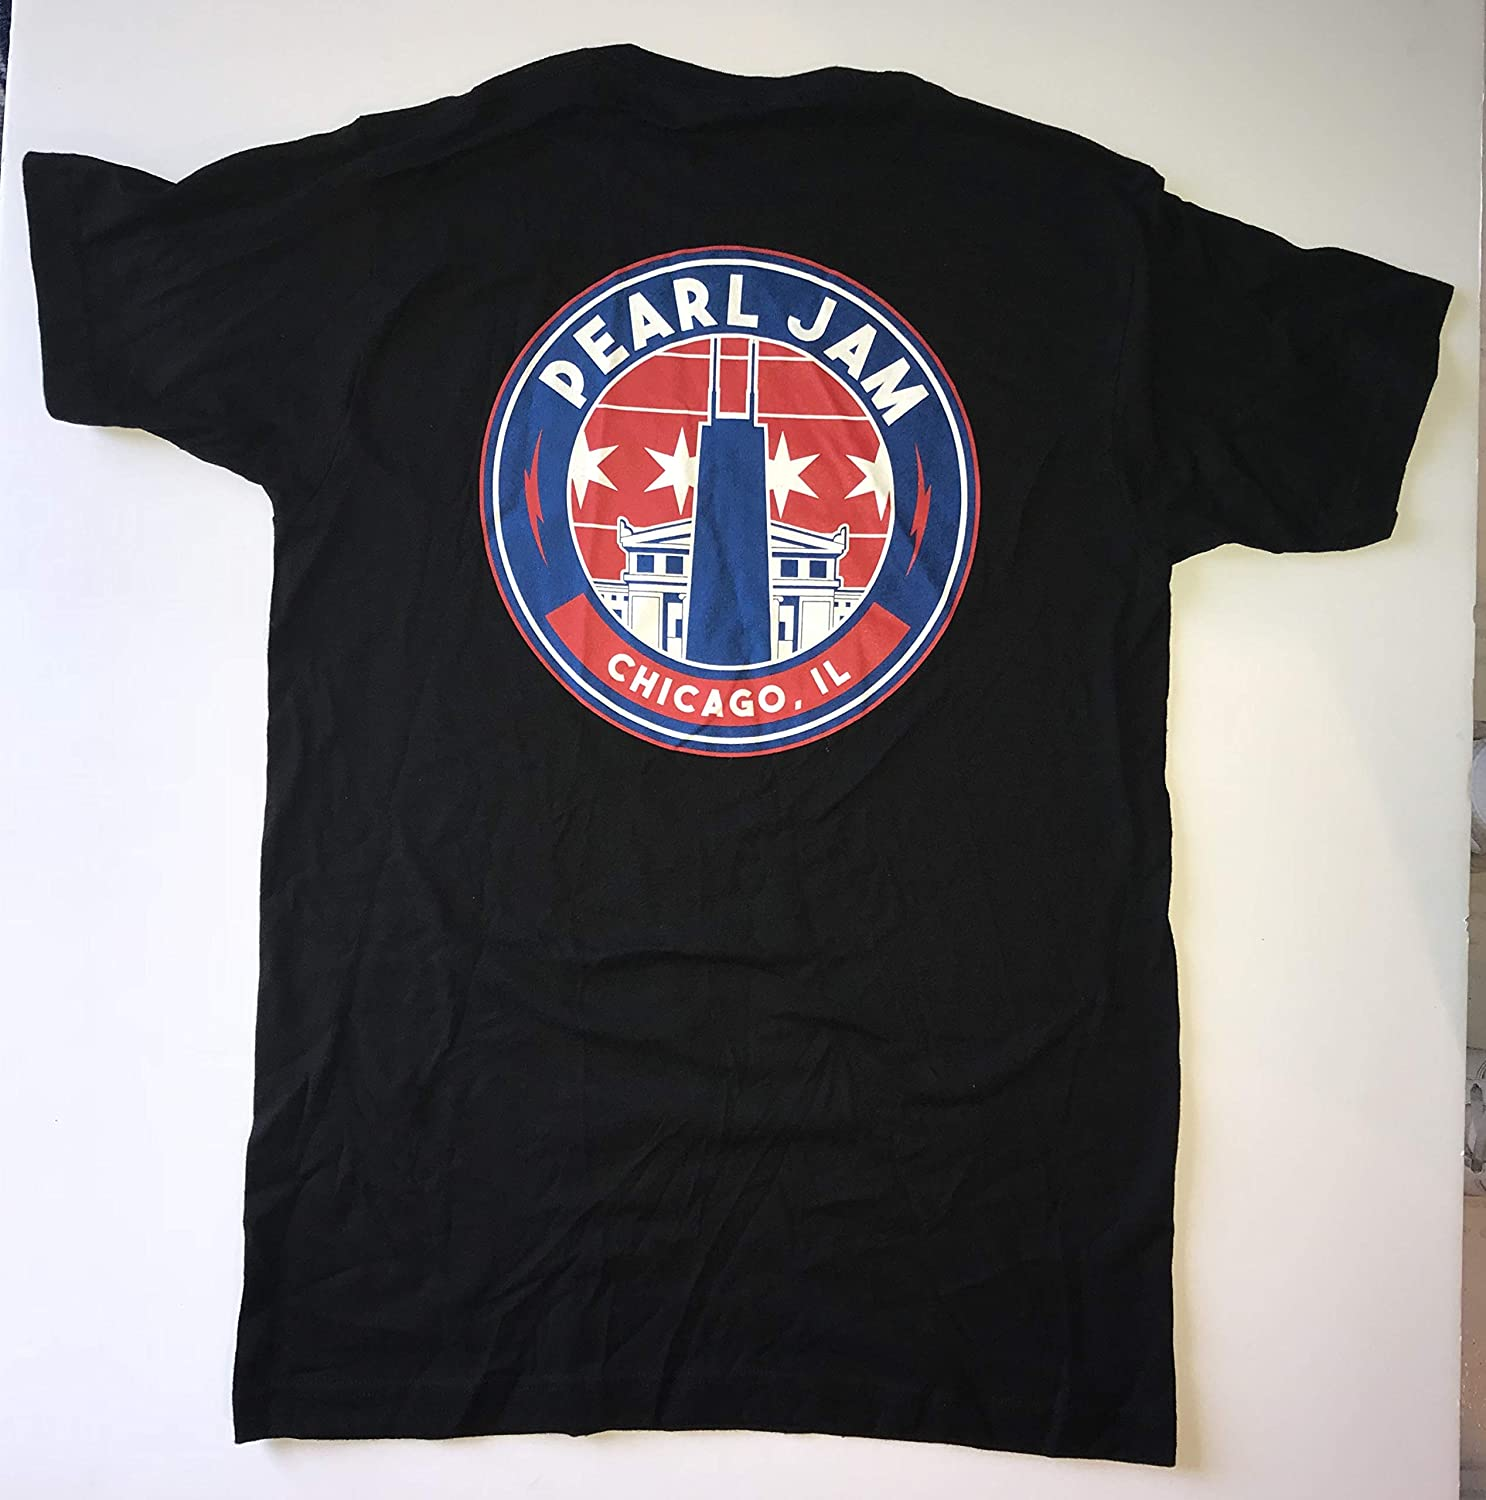 Pearl Jam chicago t shirt 2018 xxl 2x john hancock tower new wrigley field